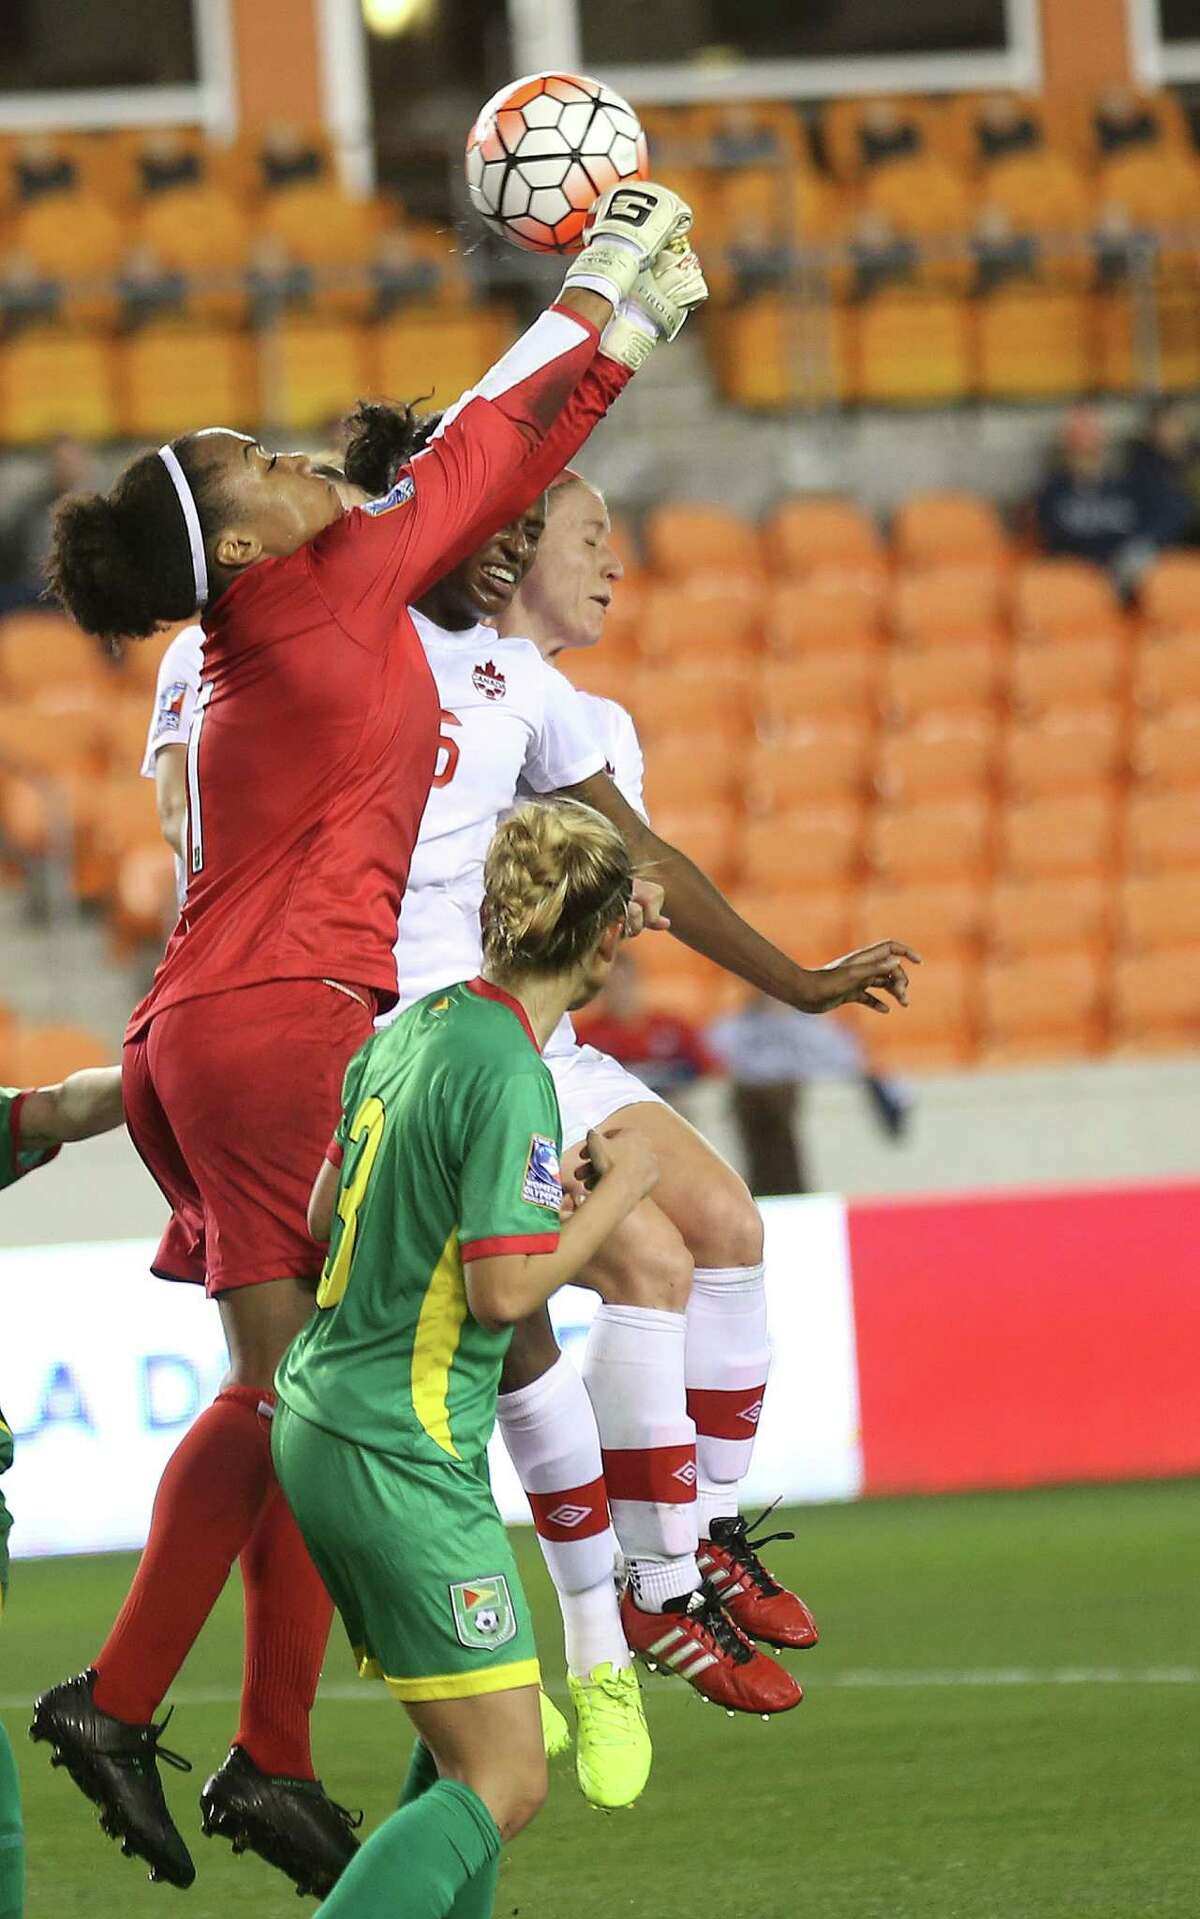 Guyana's goalie Chante Sanford (1) hits the ball out of play in the second half of CONCACAF Women's Olympic Qualifiers against Guyana at BBVA Compass Stadium on Thursday, Feb. 11, 2016, in Houston. Canada won the game 5-0.